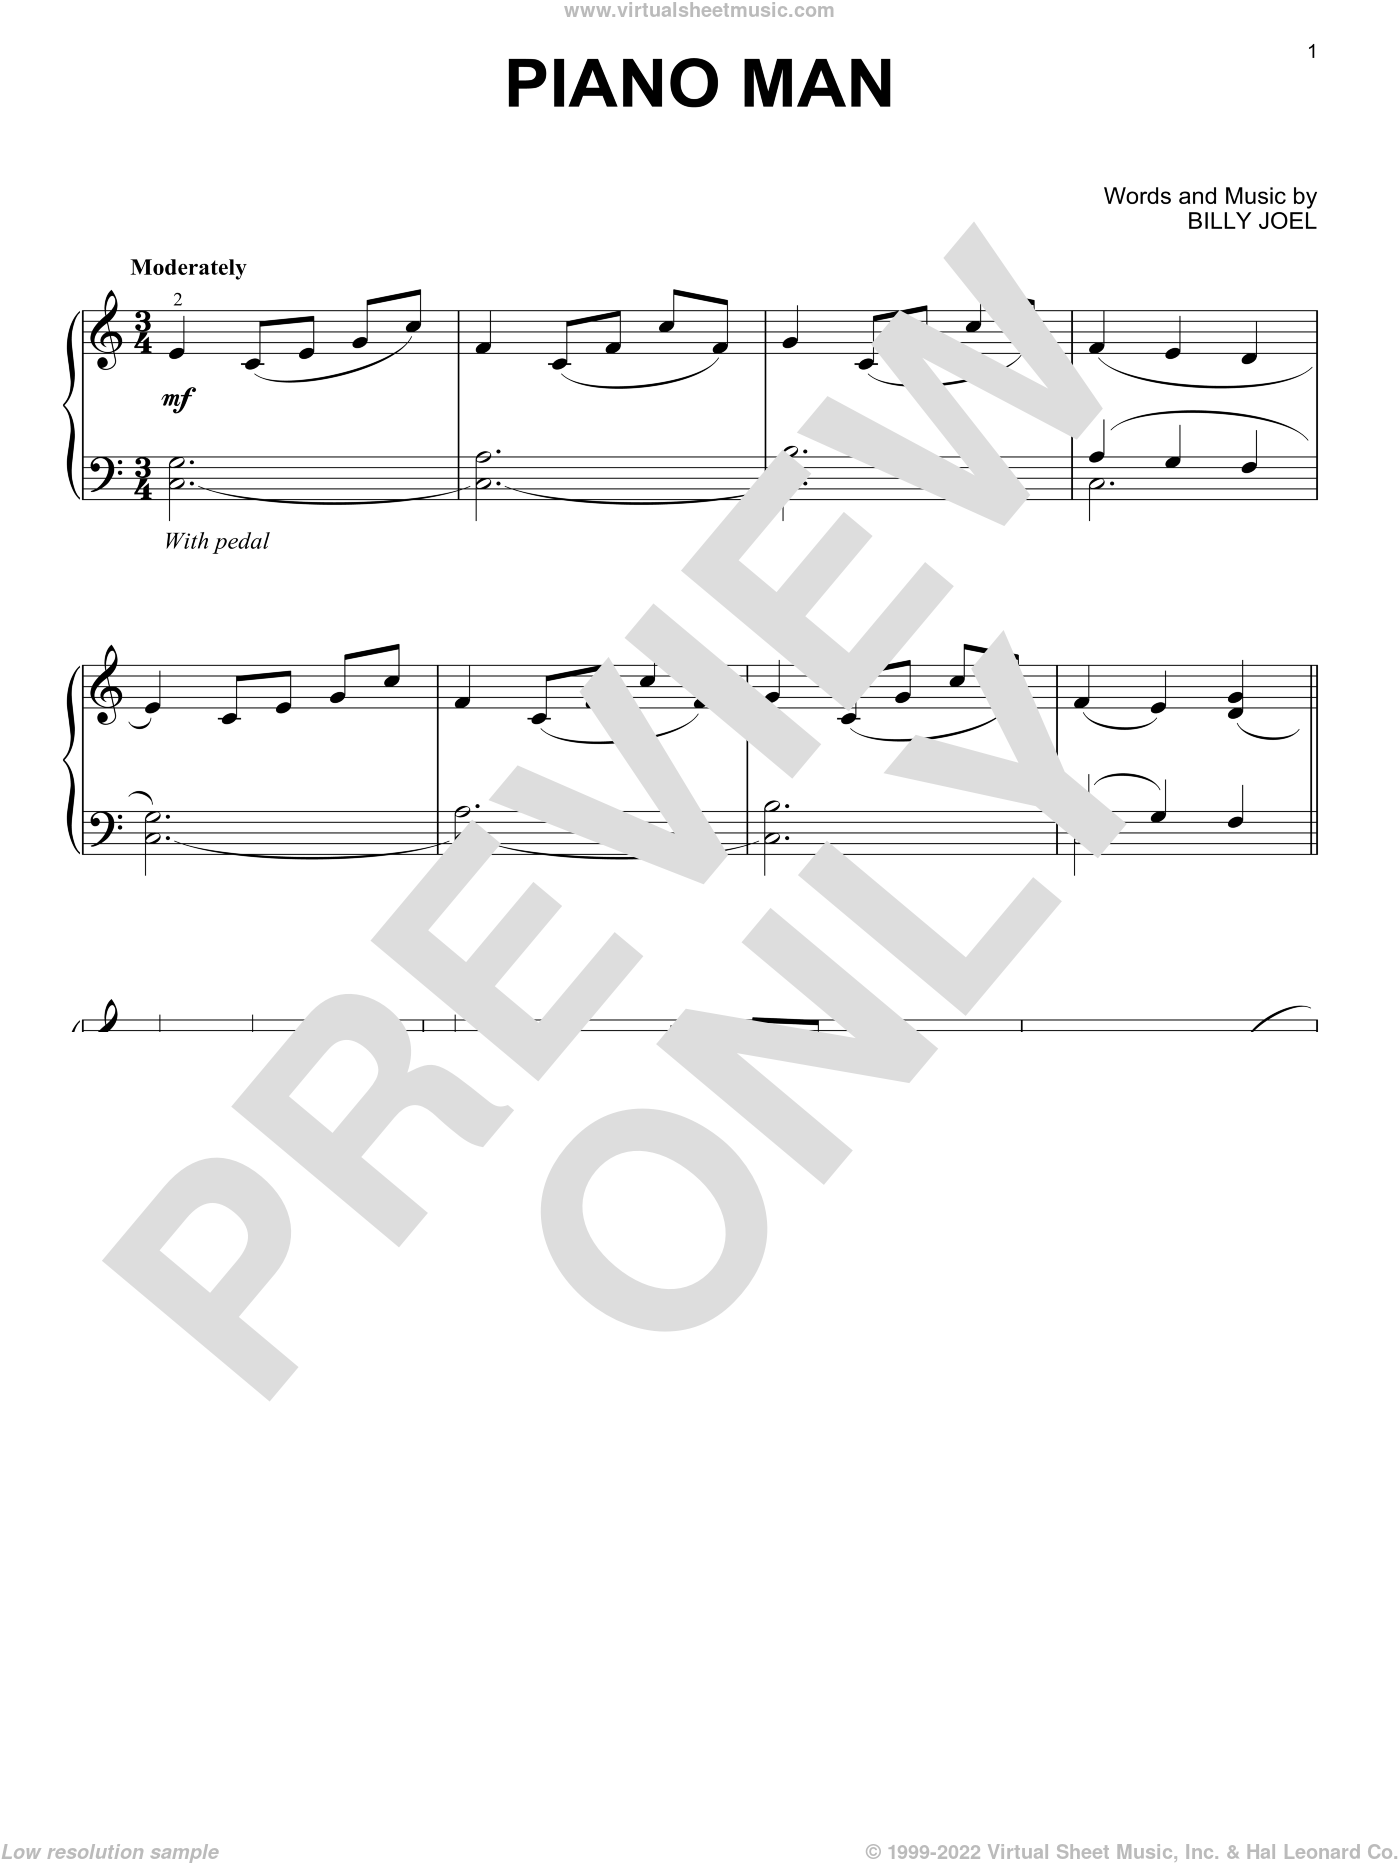 Piano Man sheet music for piano solo by Billy Joel